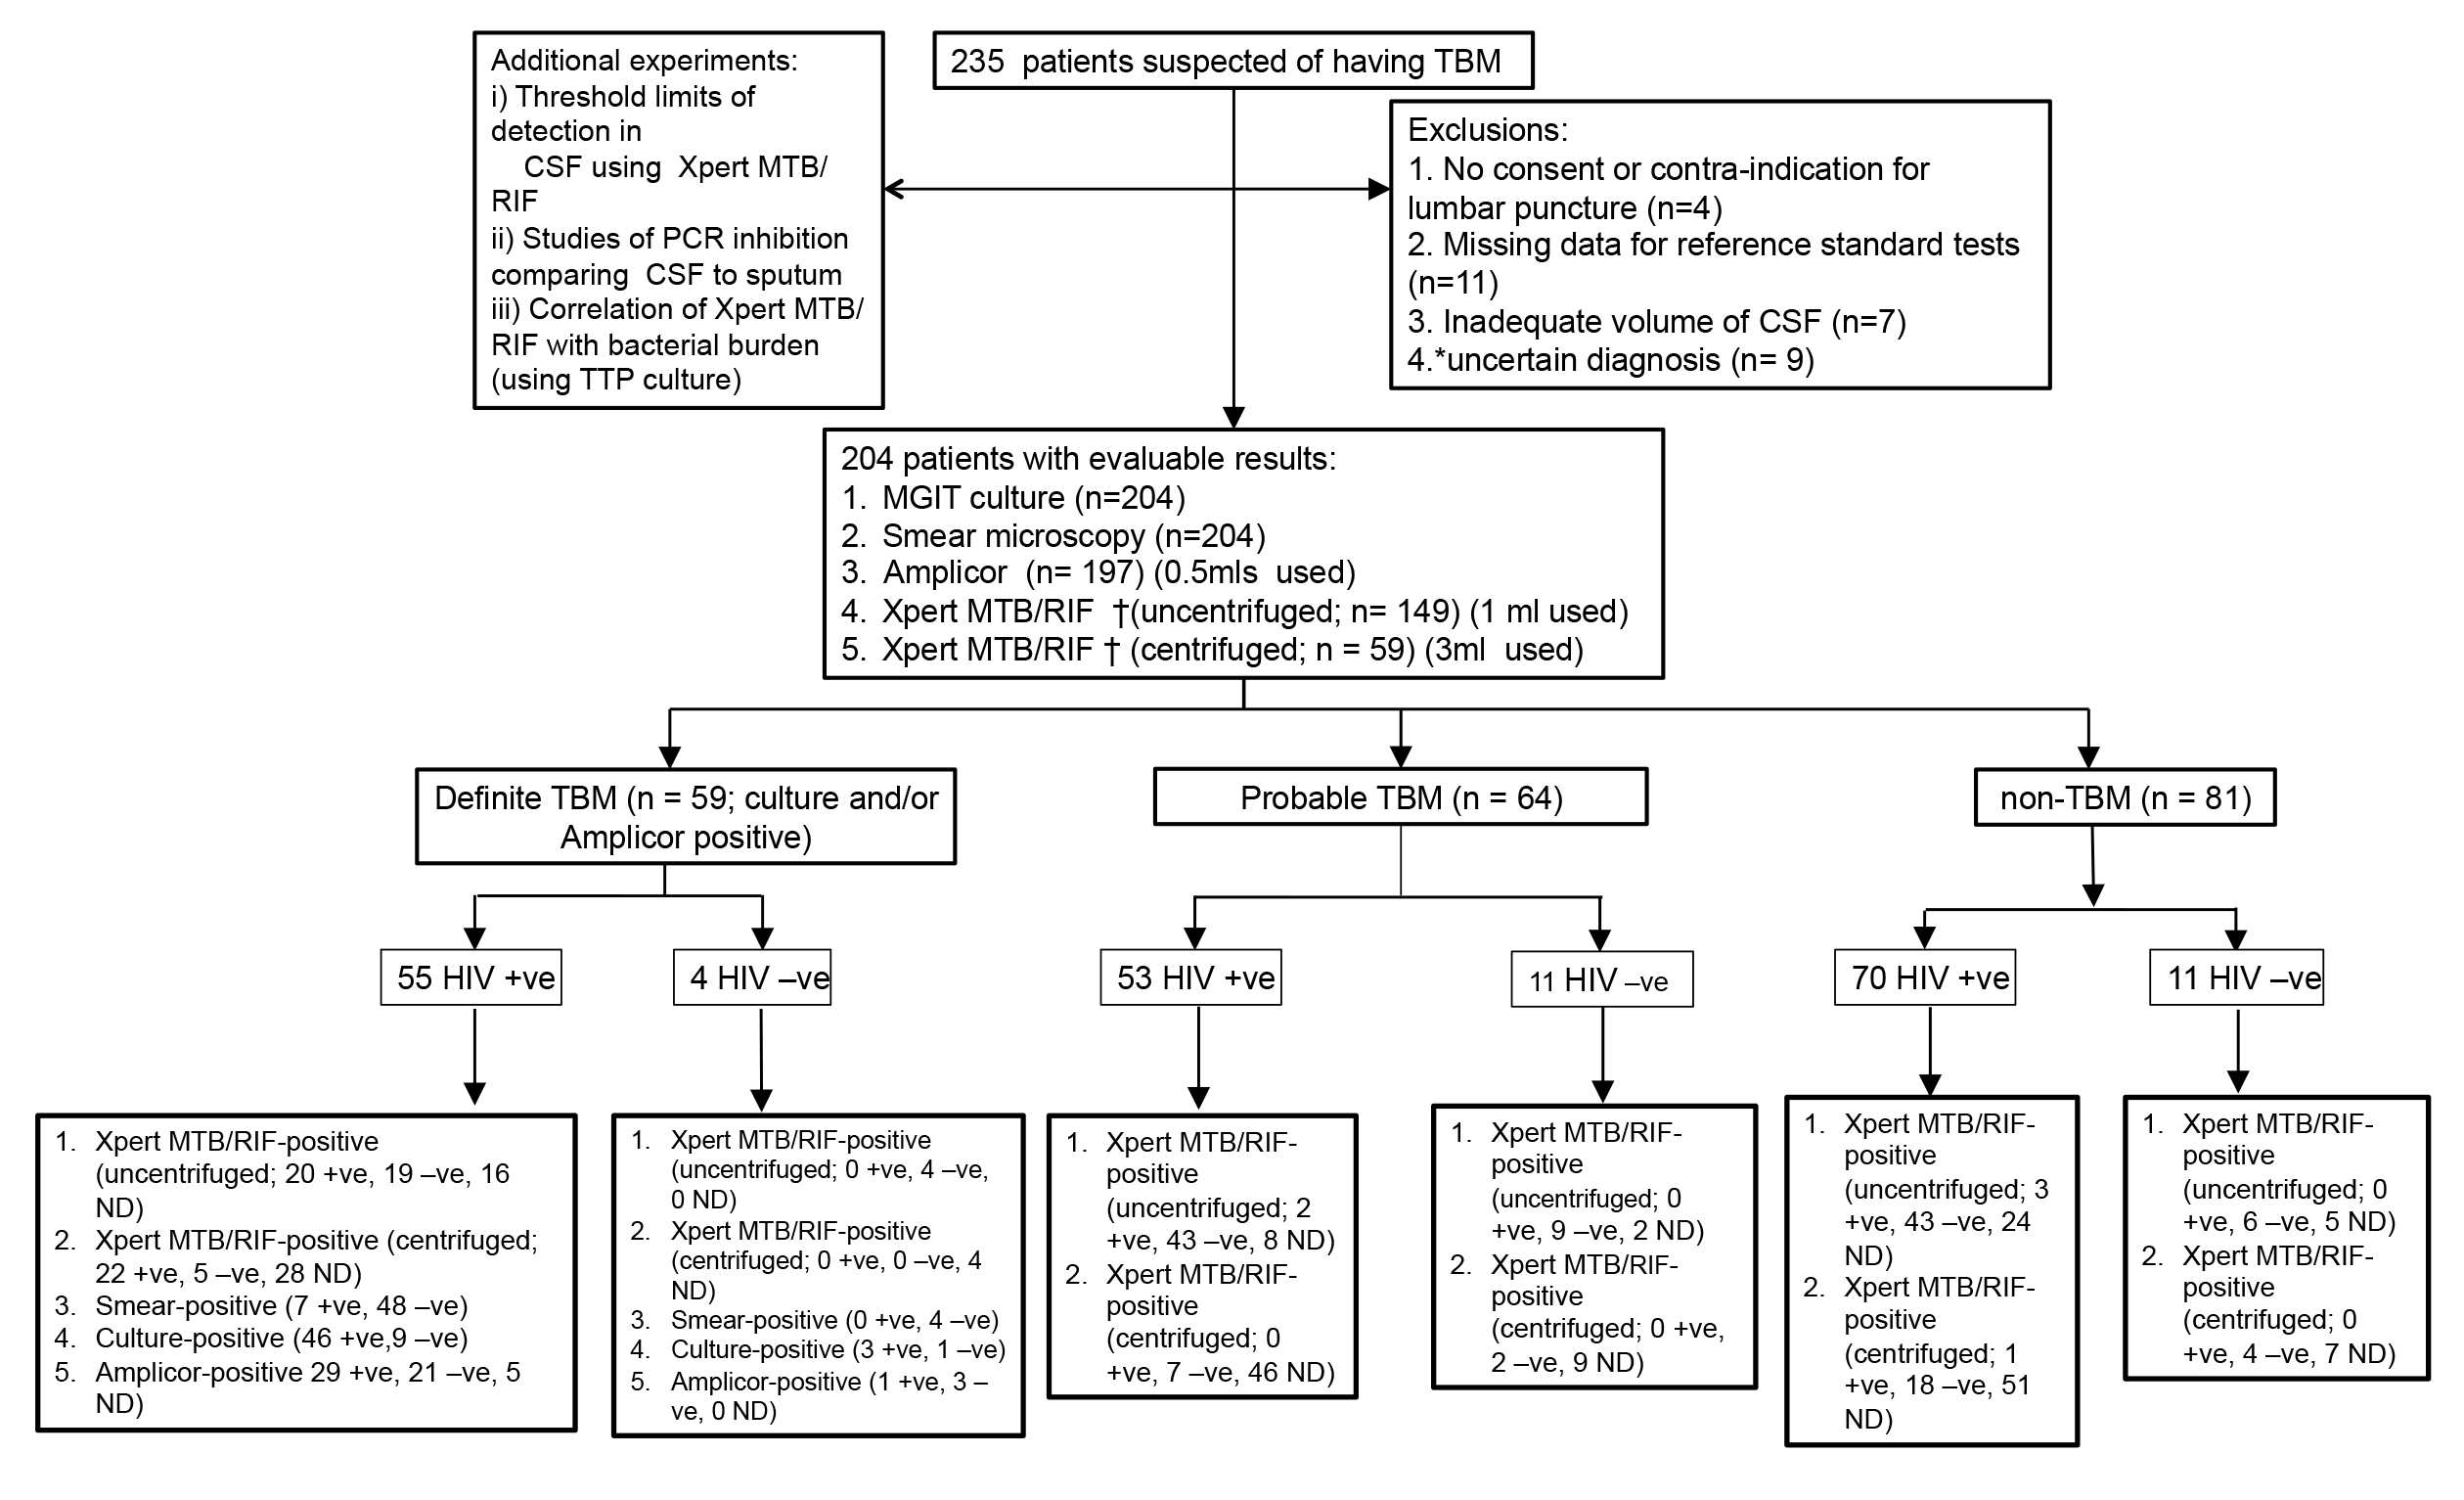 Summary flow chart of patient recruitment and diagnostic testing performed.